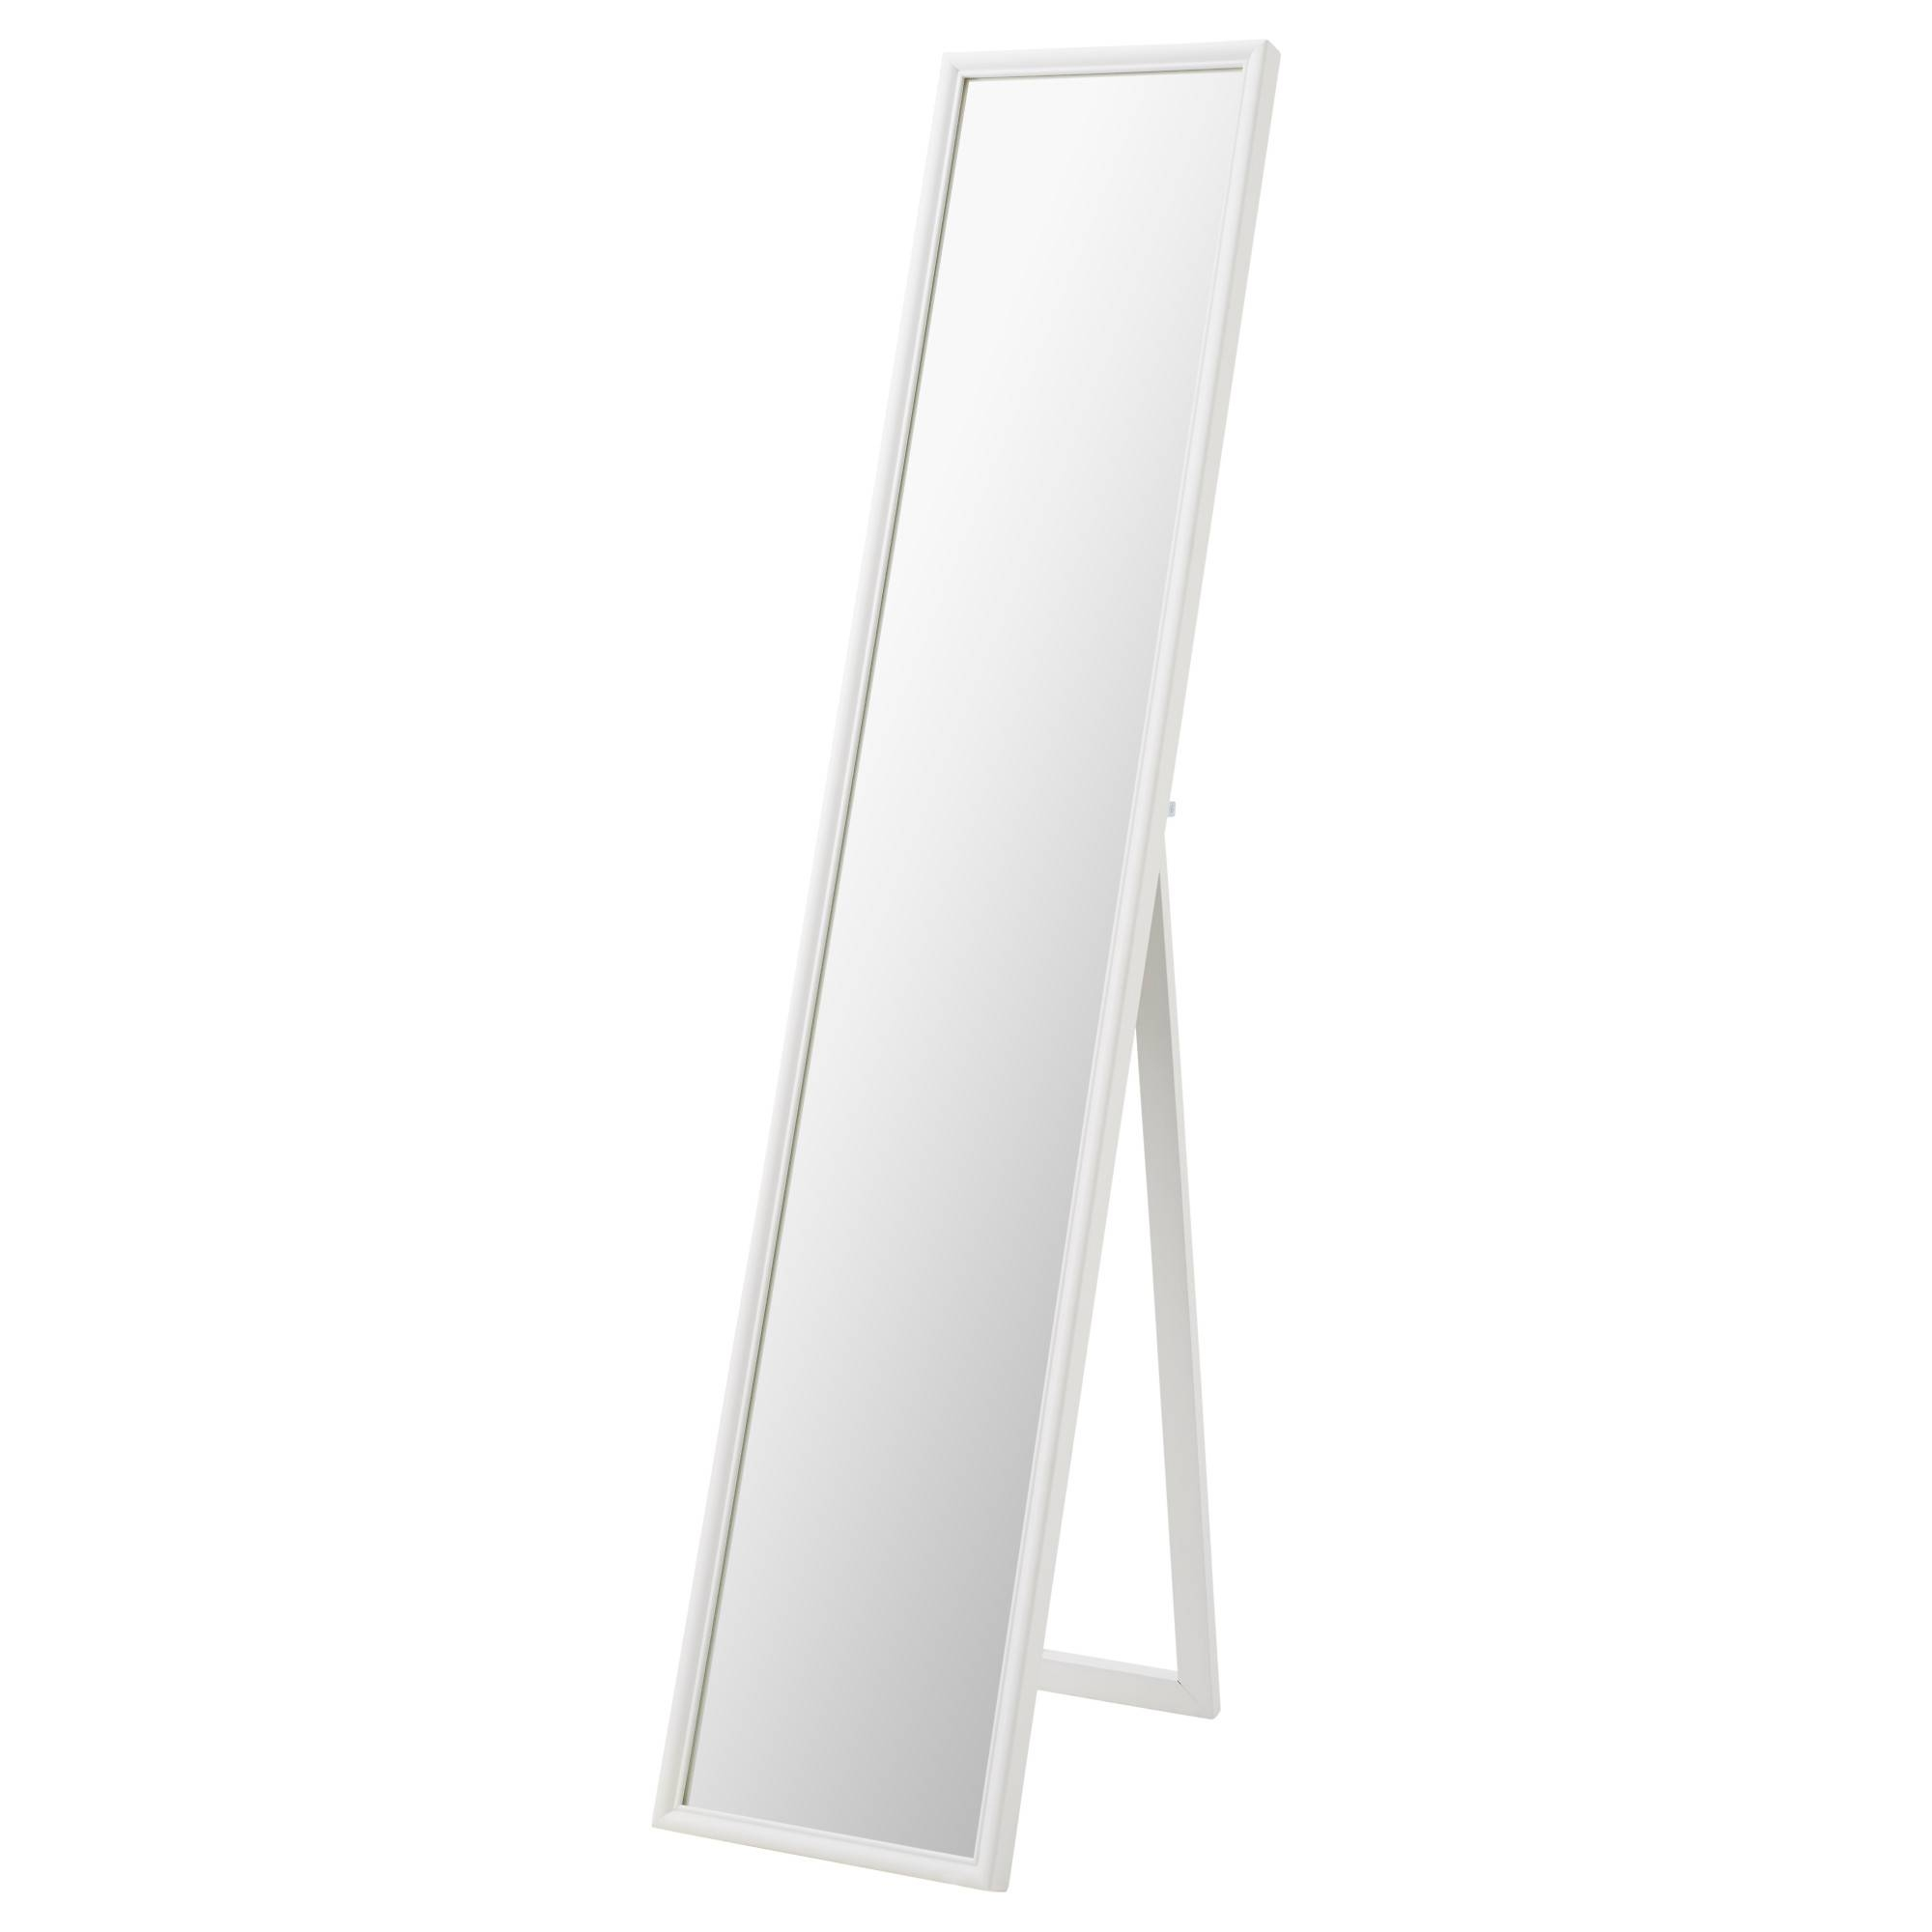 Styles: Kmart Mirrors | Free Standing Mirrors | White Full Length for Free Stand Mirrors (Image 13 of 15)